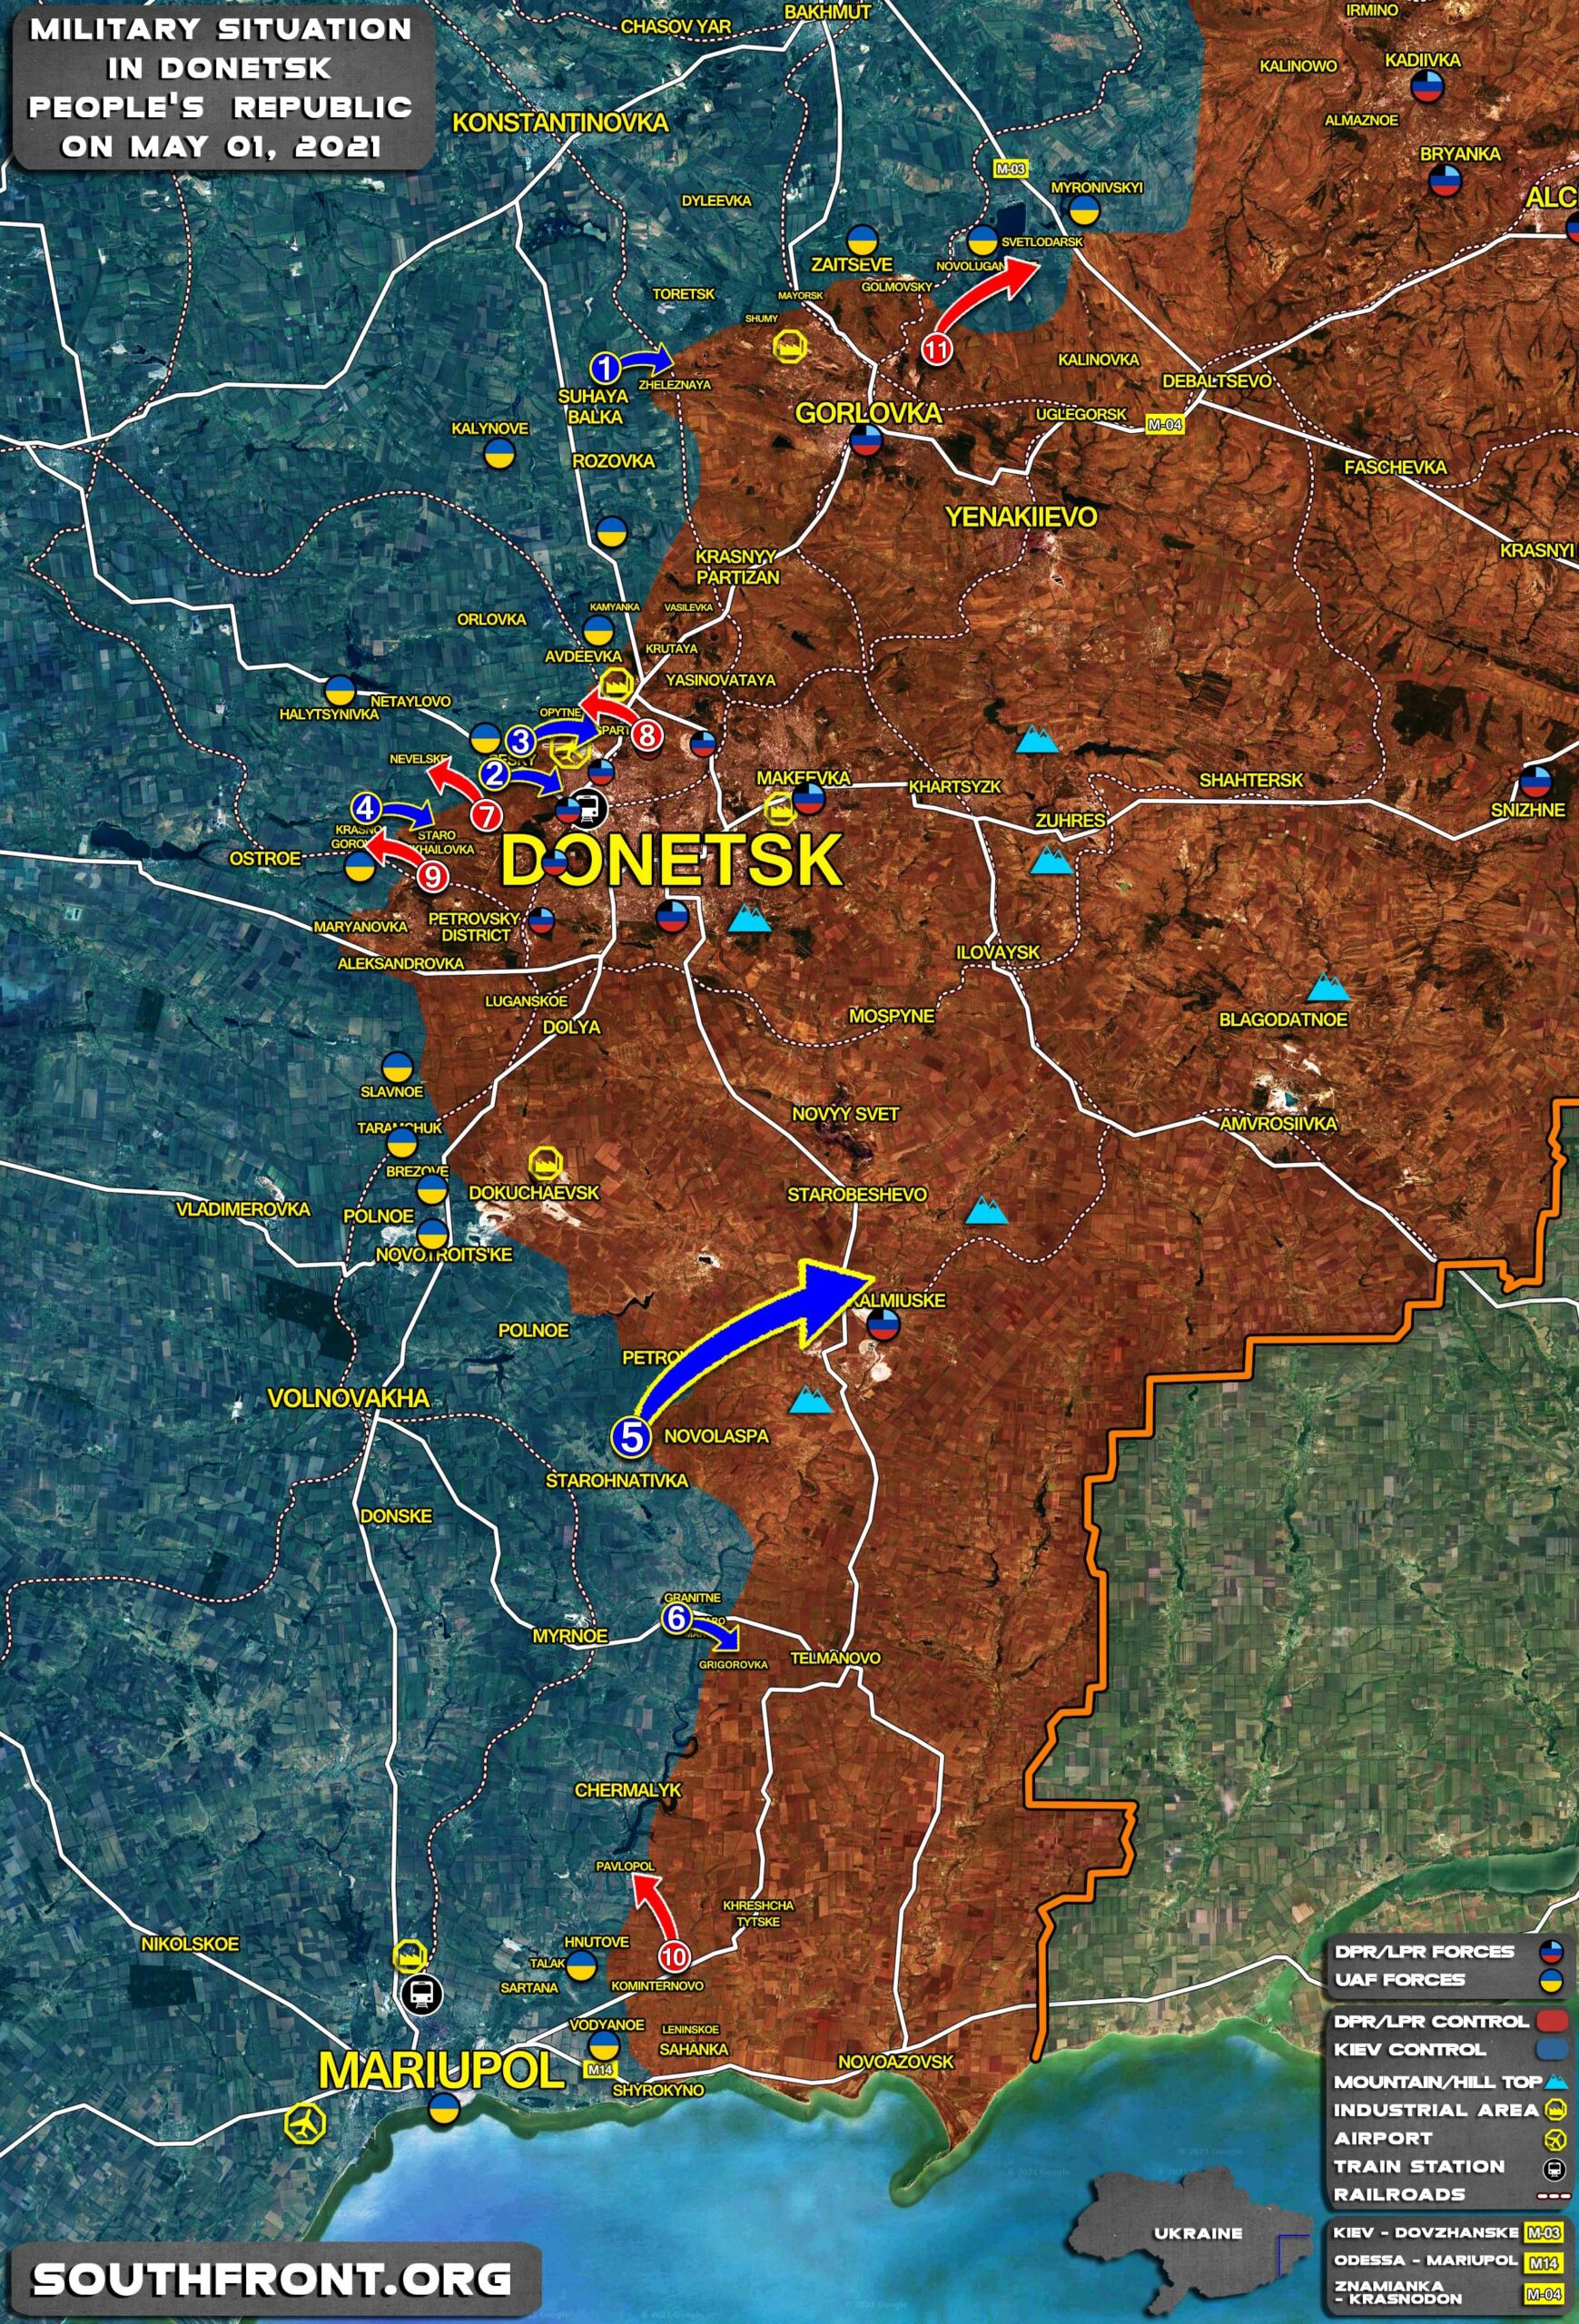 Military Situation In Donetsk People's Republic On May 1, 2021 (Map Update)